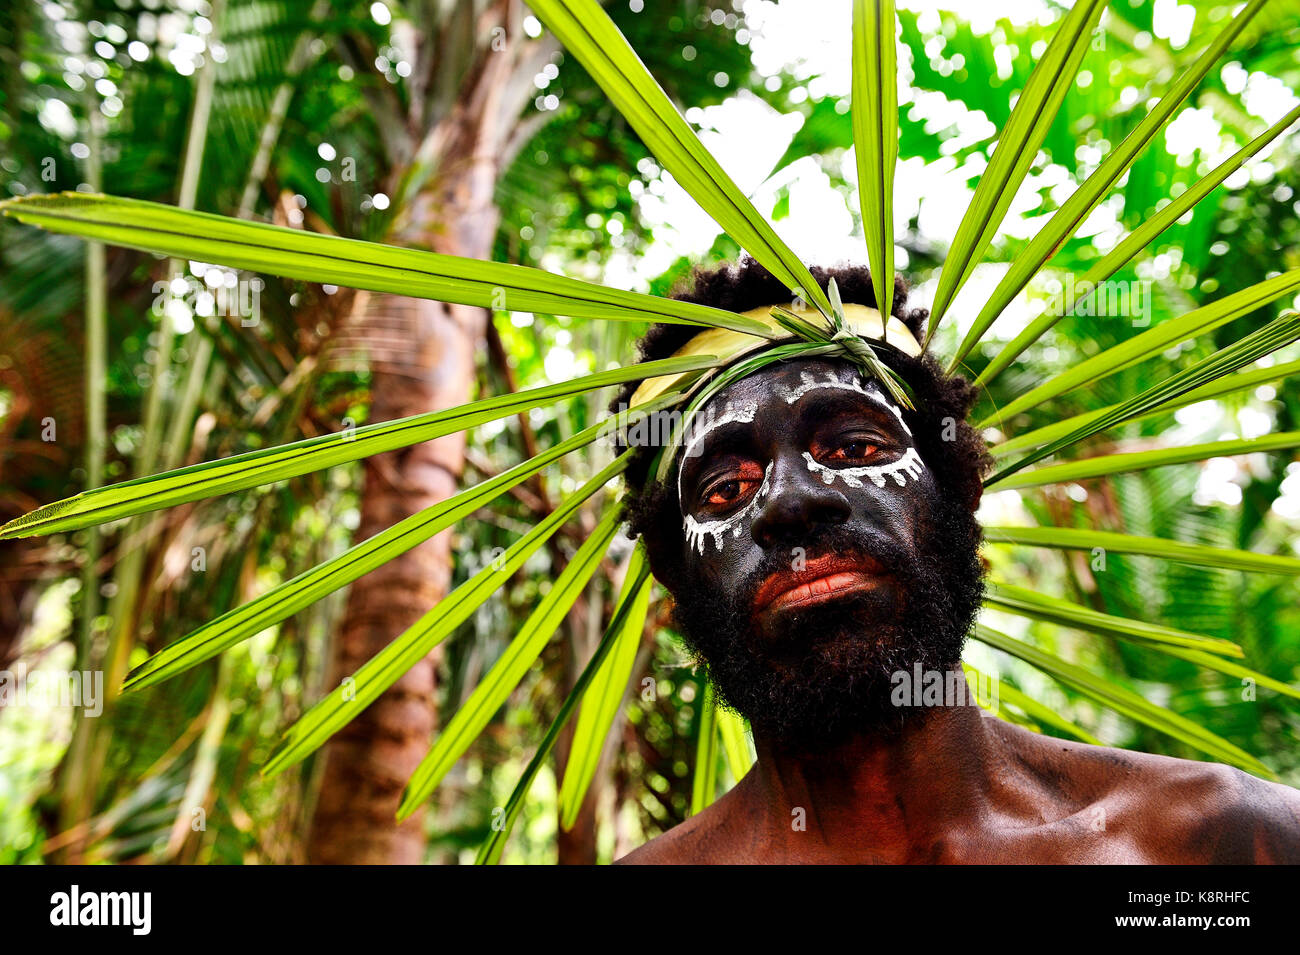 Korafe man with face painting and headdress made of leaves, McLaren-Harbour, Tufi, Papua New Guinea, Oceania - Stock Image